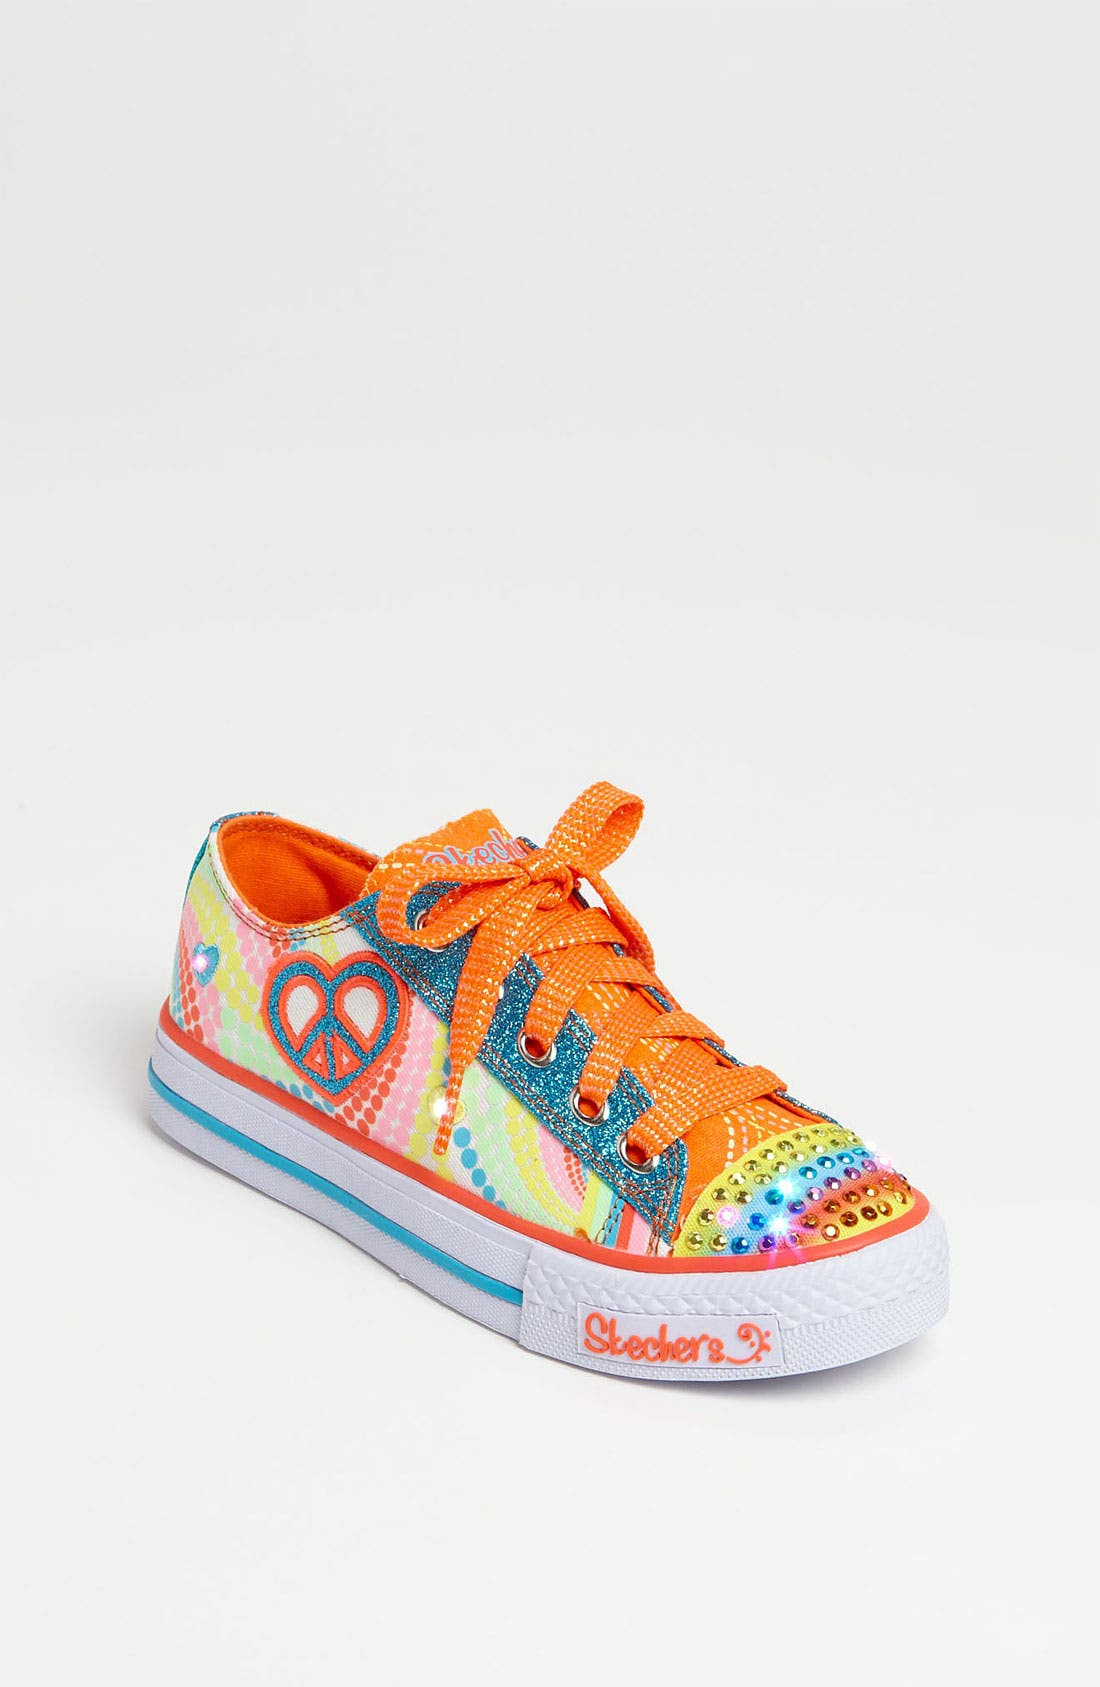 Alternate Image 1 Selected - SKECHERS 'Shuffles - Lights Heart Sparks' Sneaker (Walker, Toddler & Little Kid)